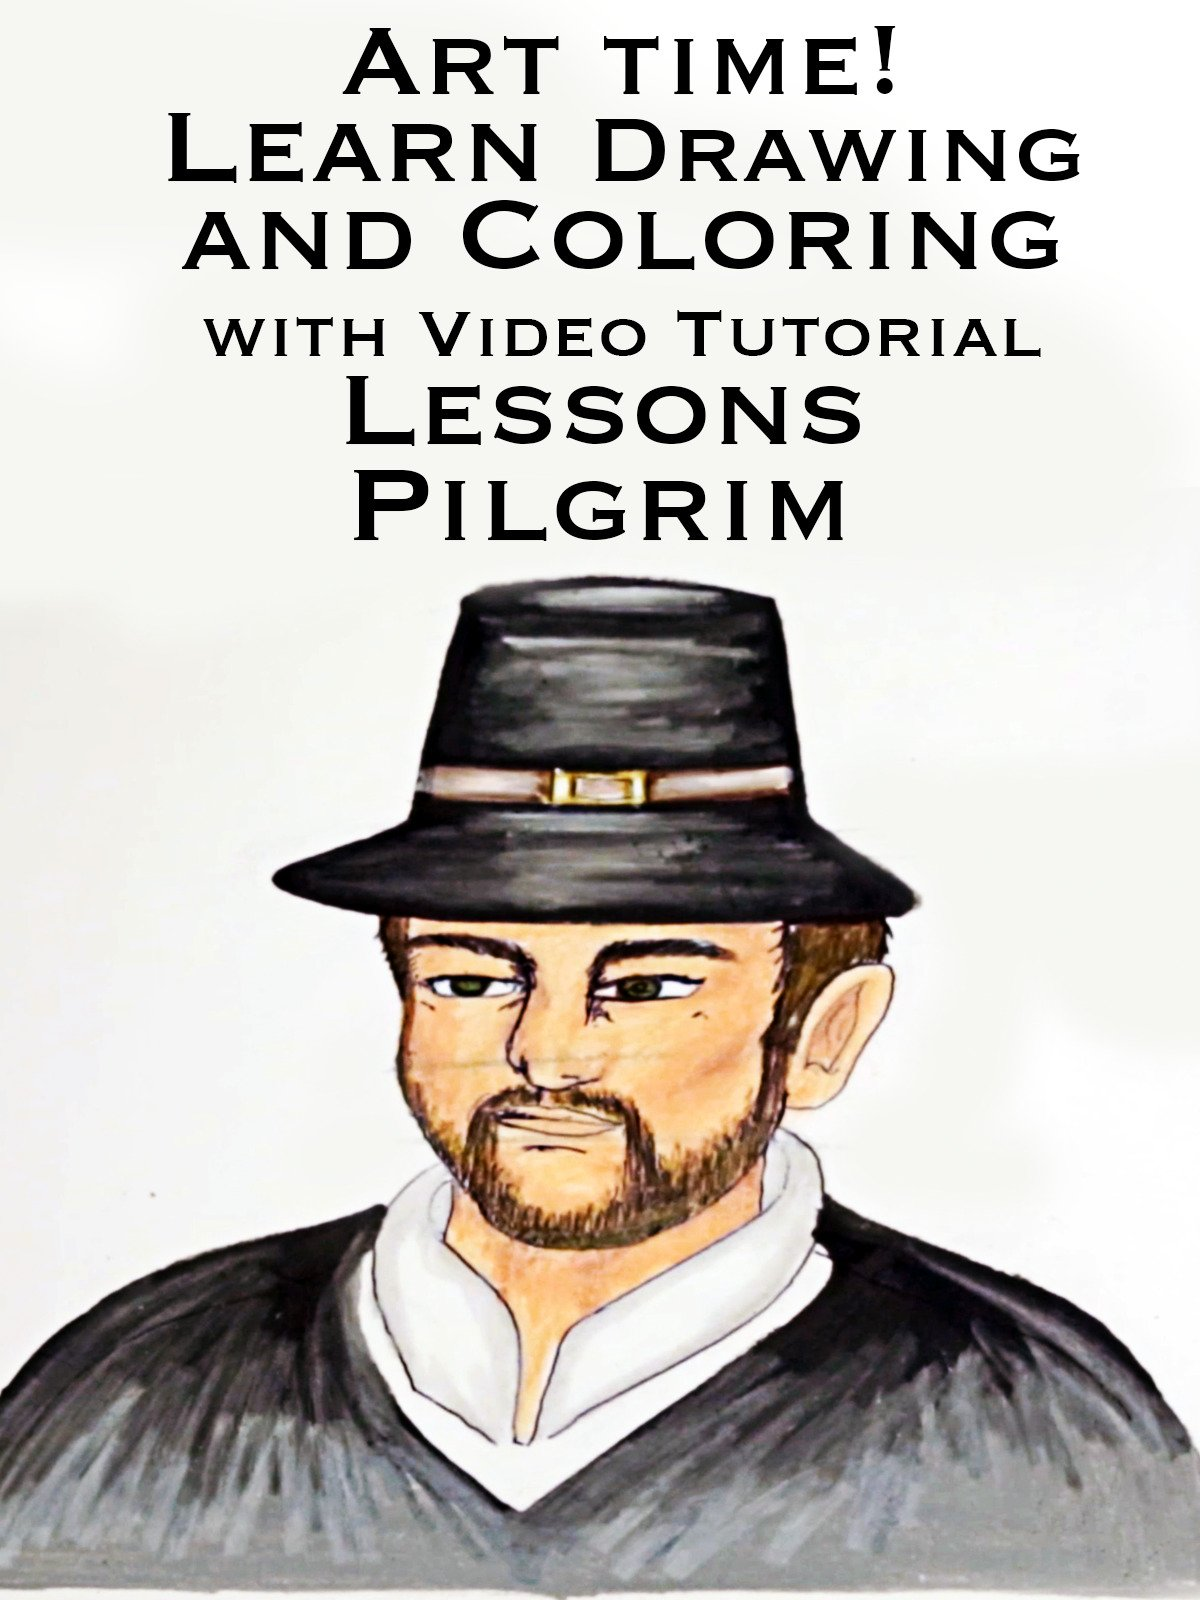 Art Time! Learn Drawing and Coloring with Video Tutorial Lessons Pilgrim